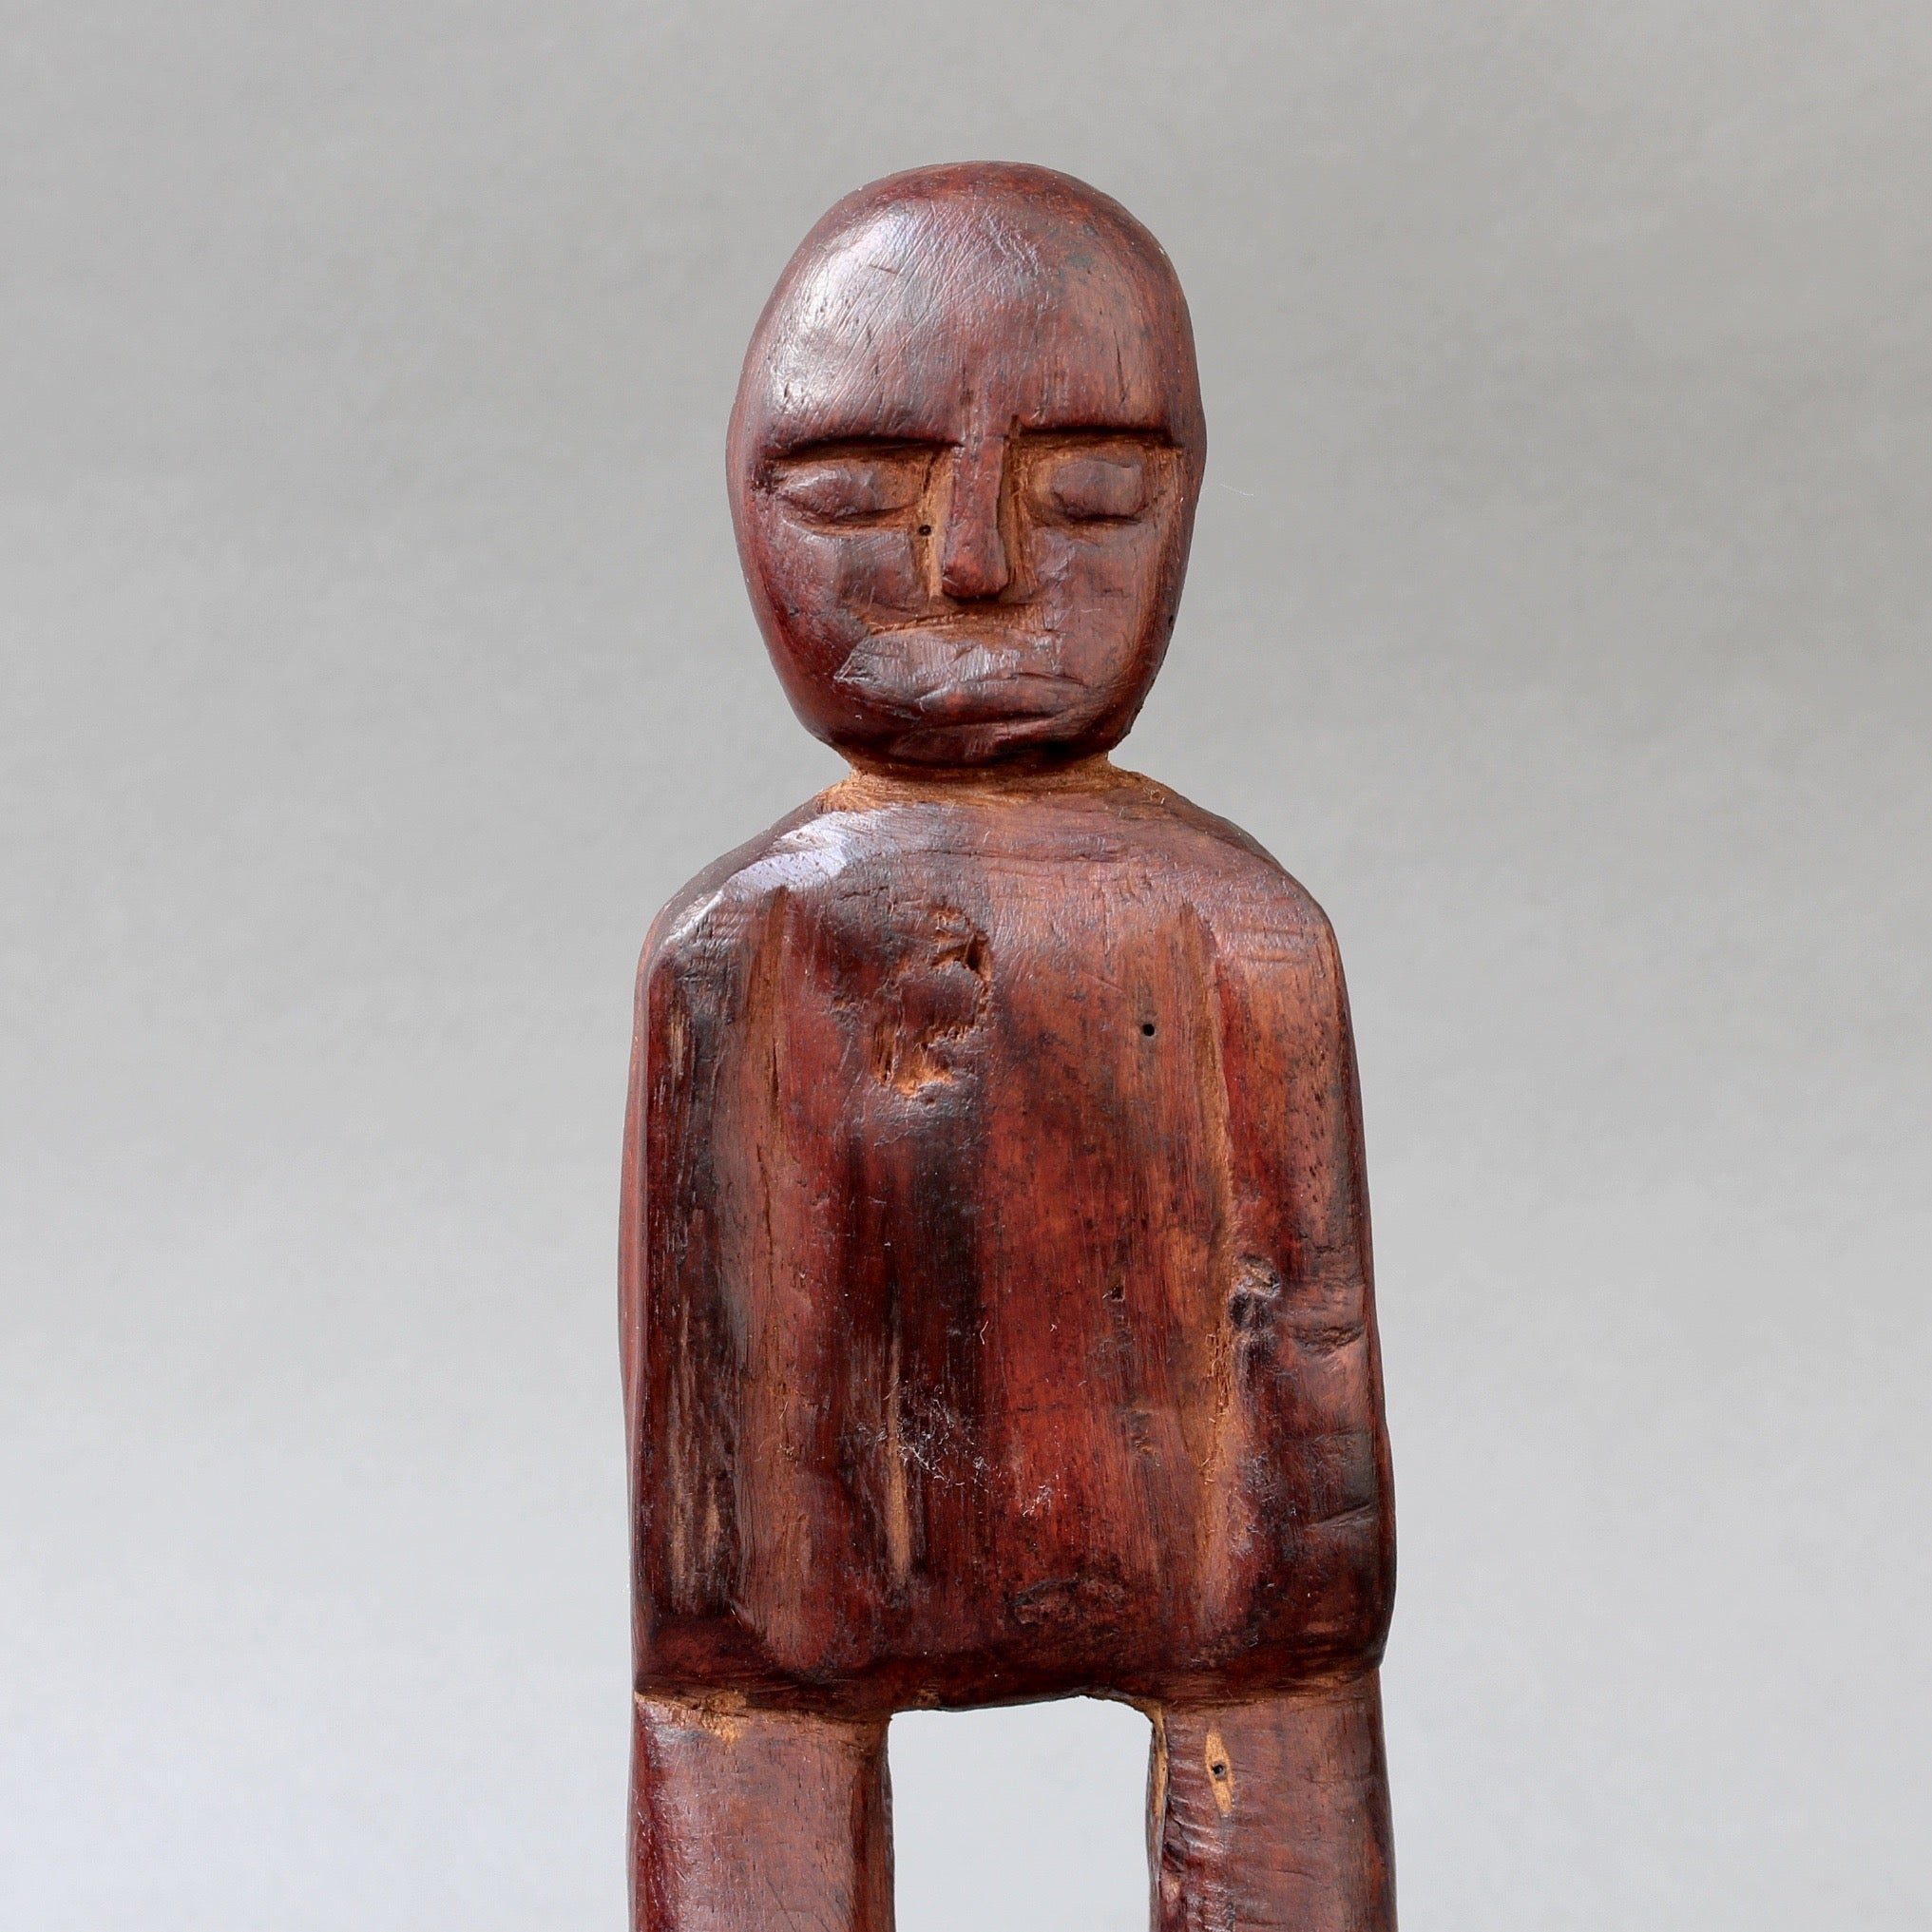 Sculpted Wooden Traditional Figure from Timor Island, Indonesia (circa 1960s - 1970s)